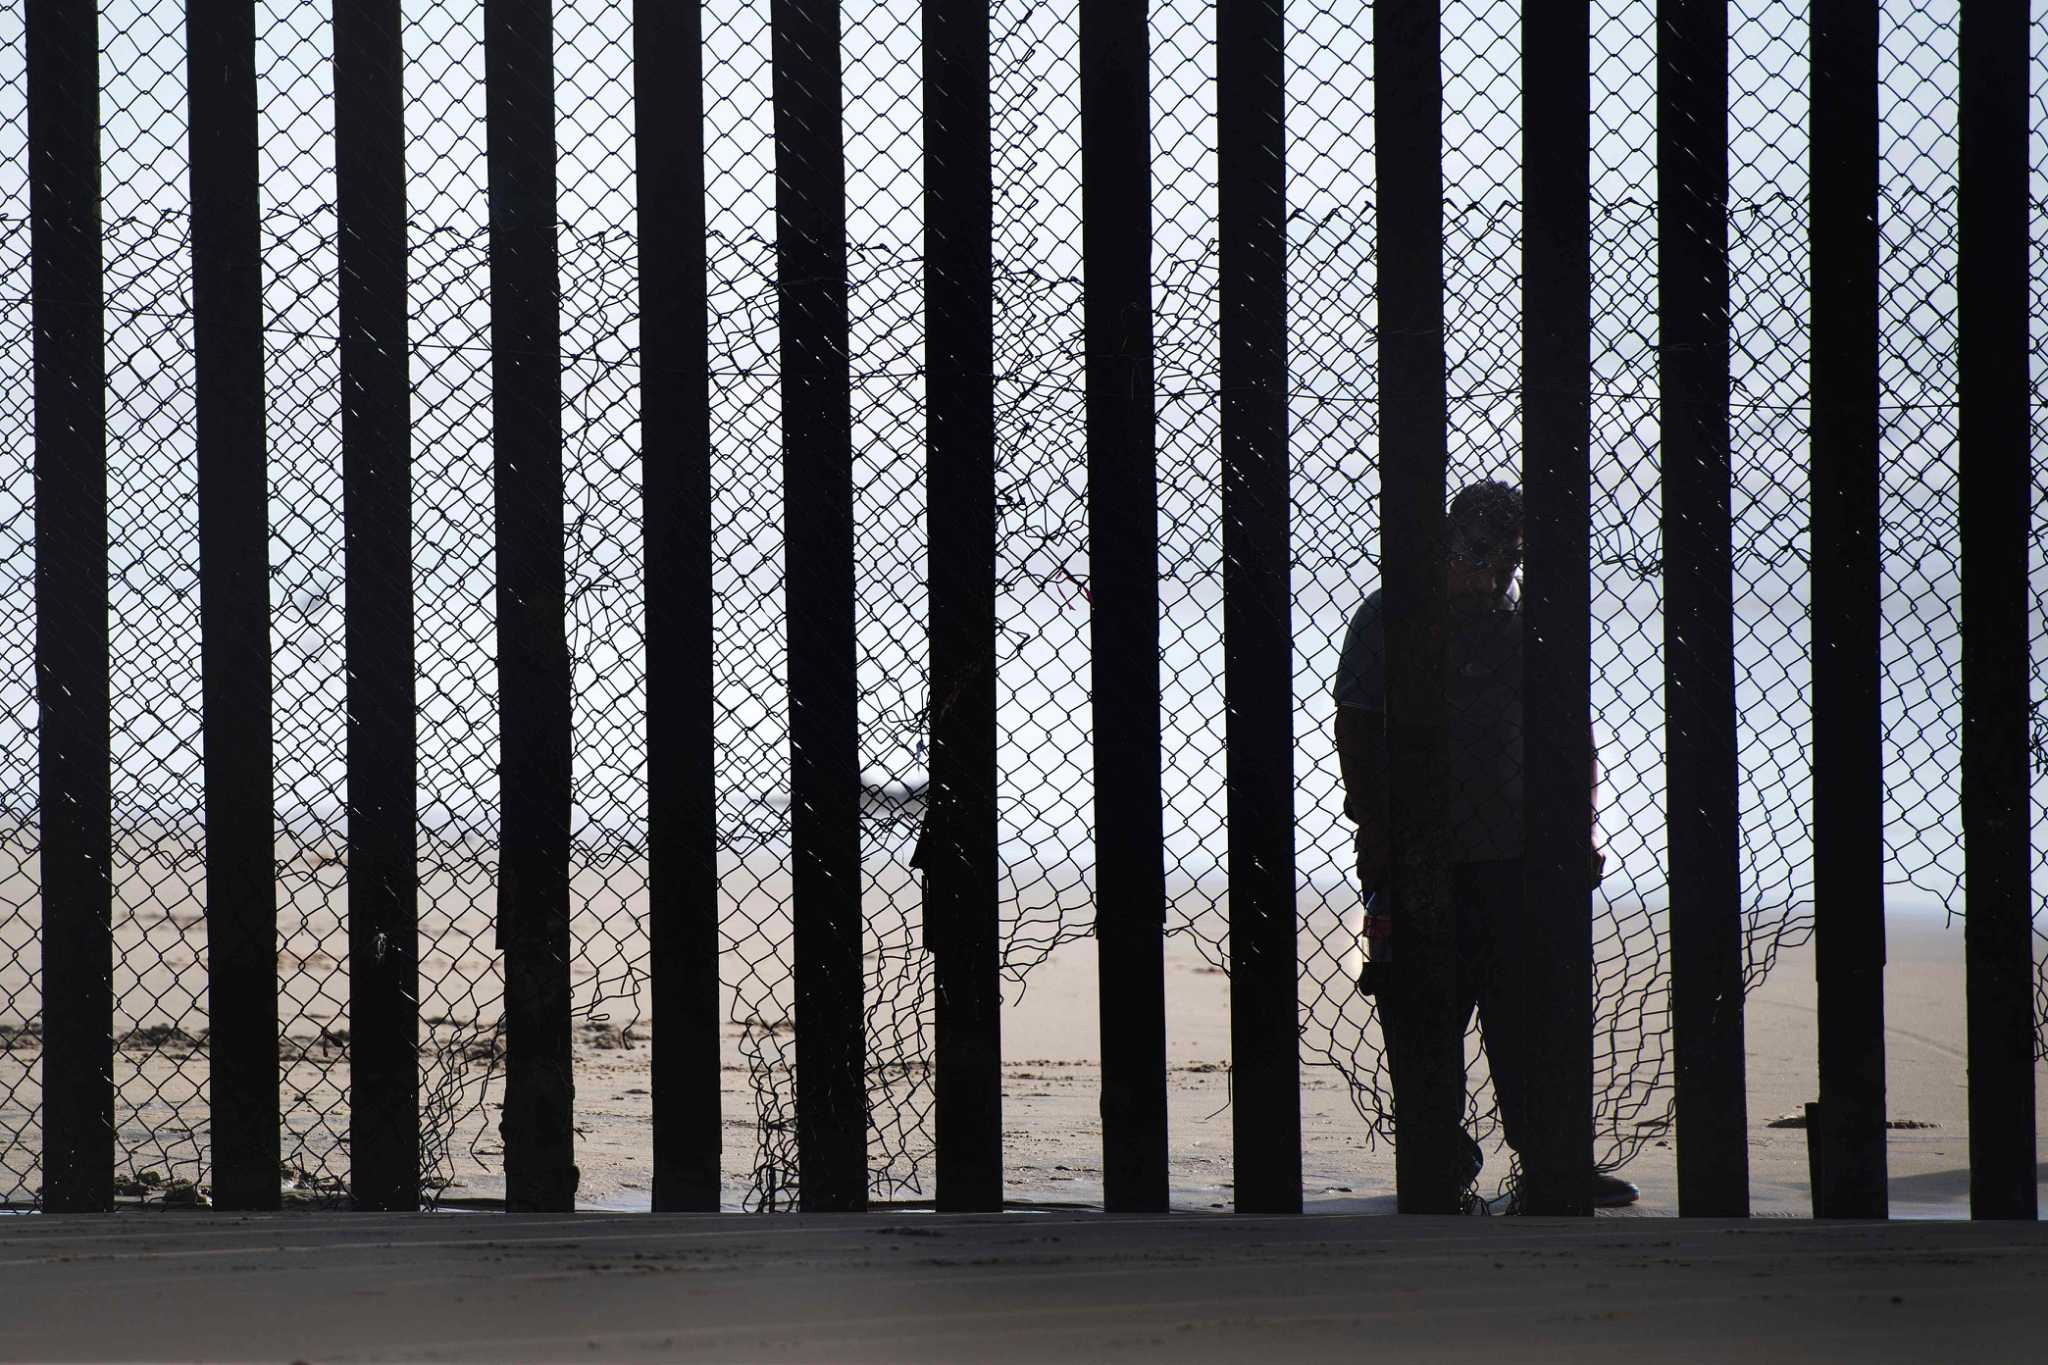 We can have both — immigrants and border security